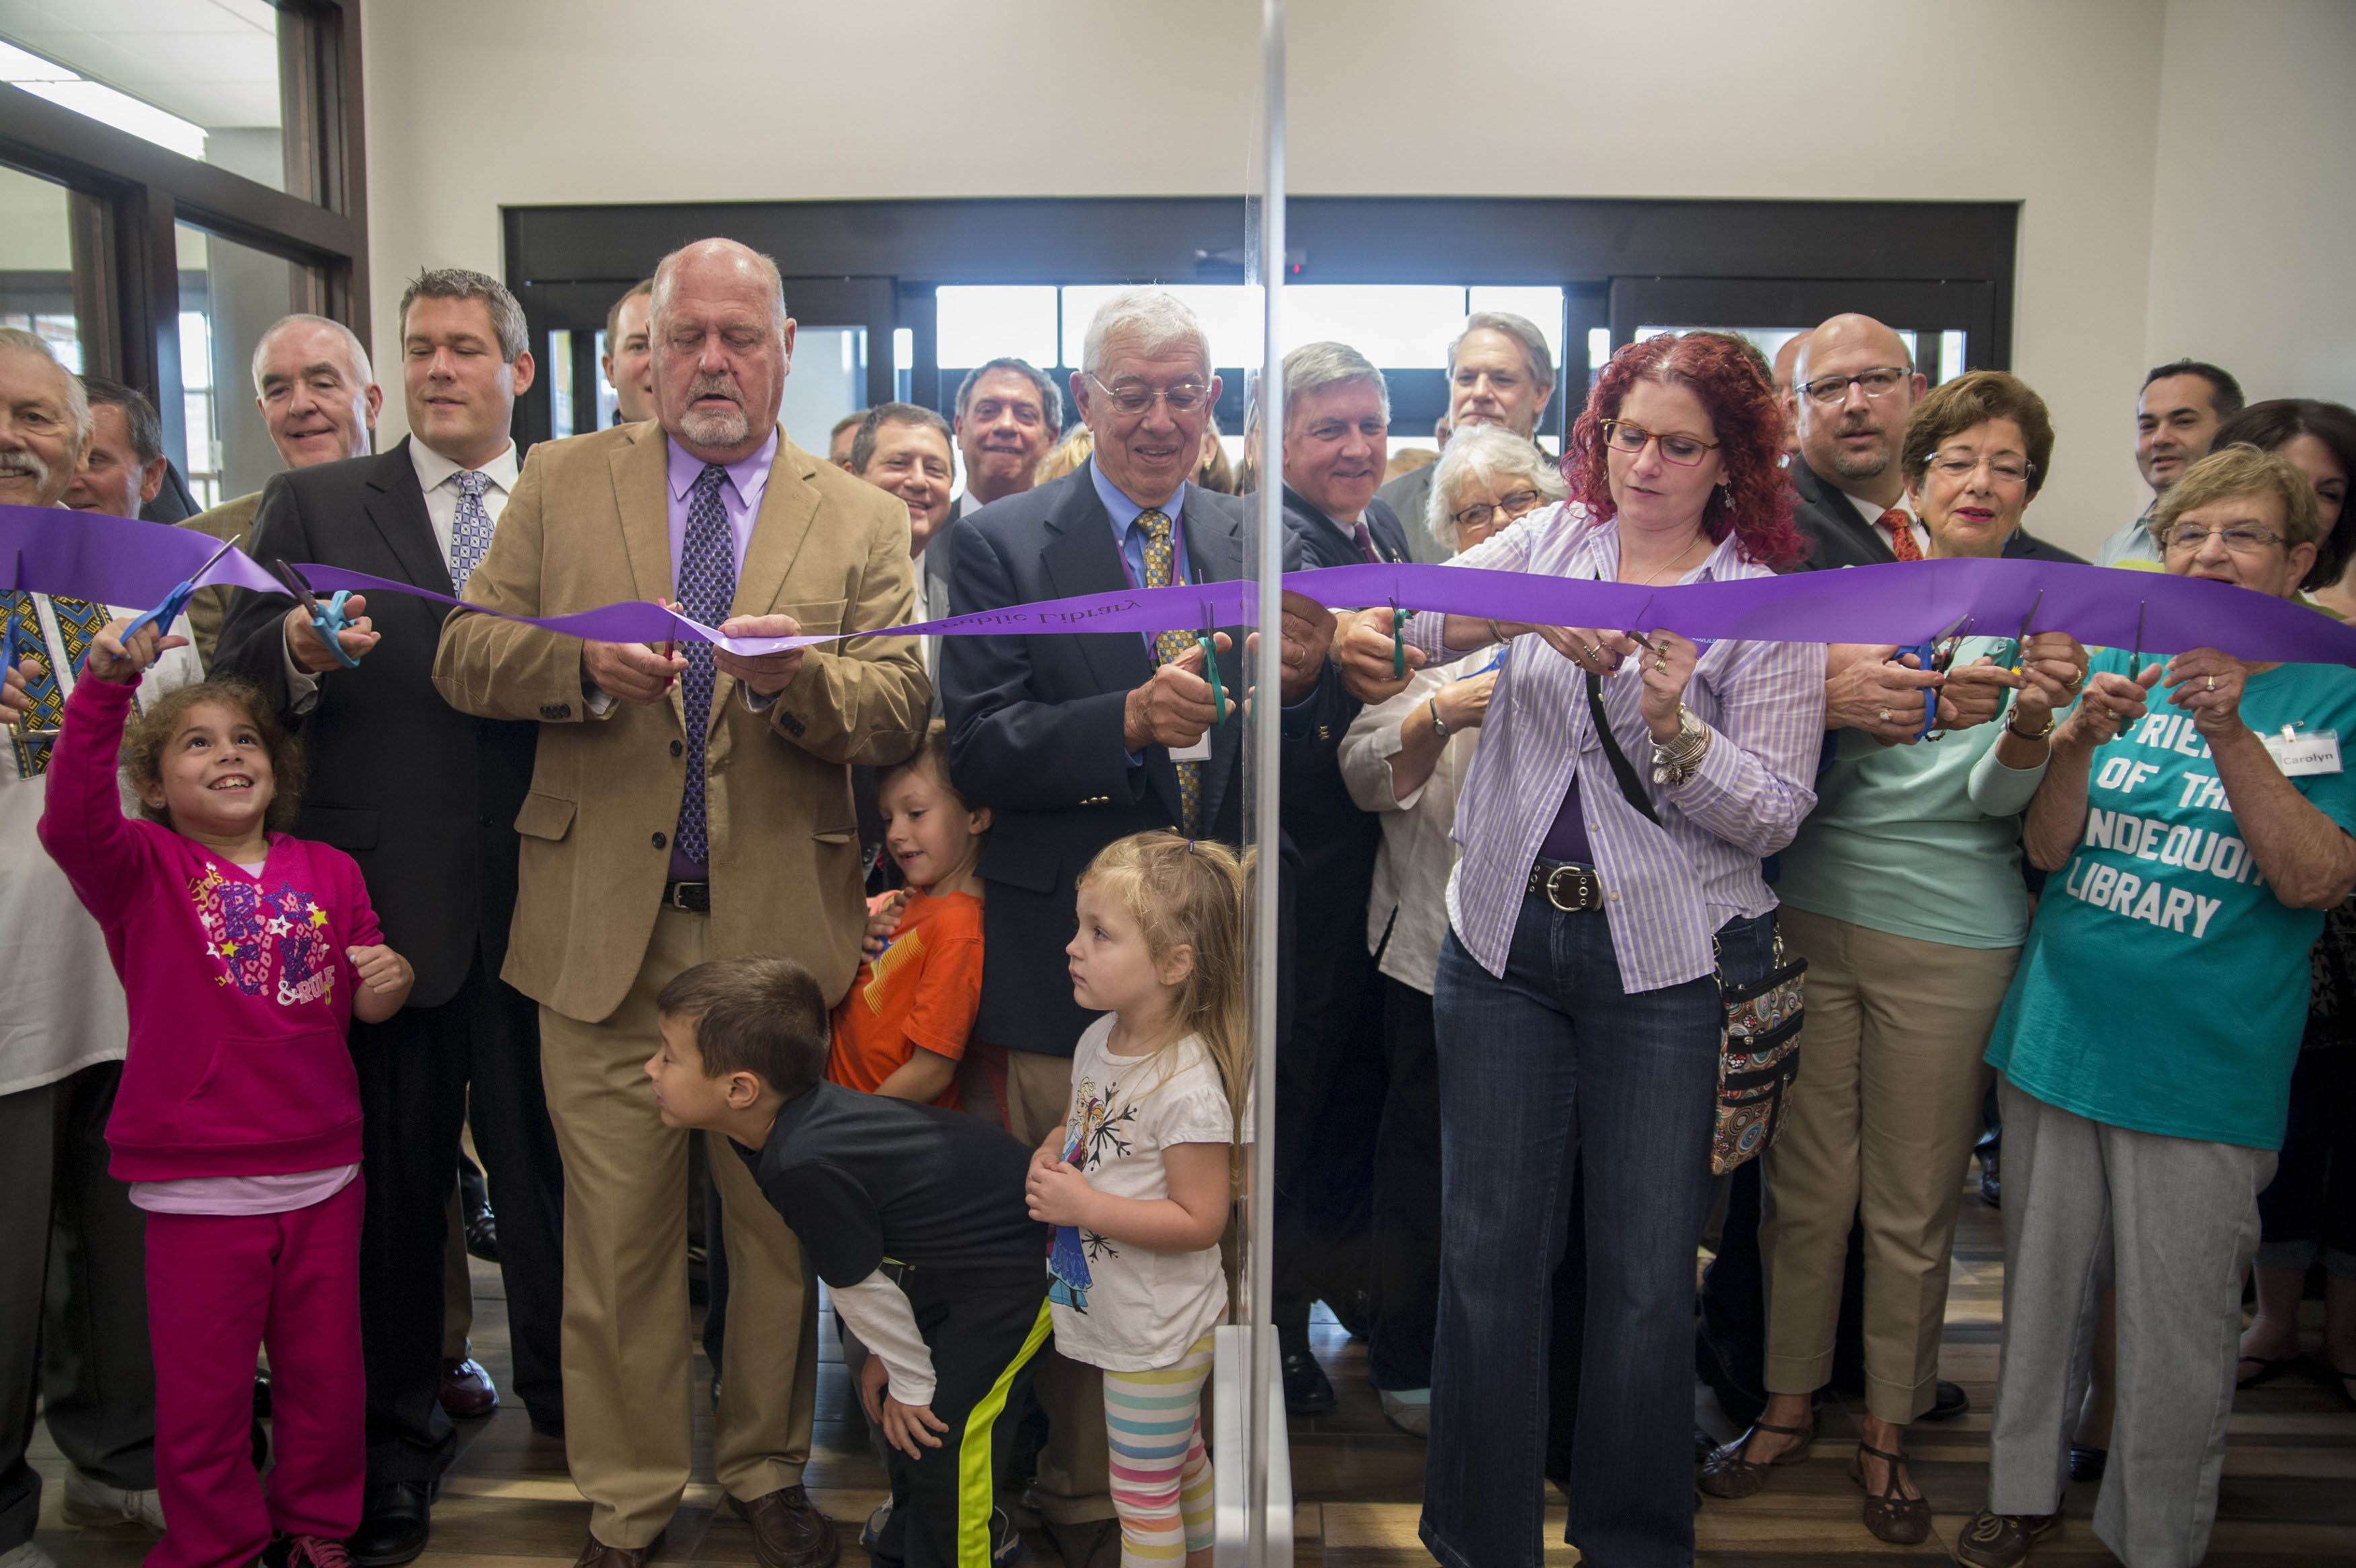 Grand_Opening_-_Irondequoit_Public_Libray_-_Tipping_Point_Communications.jpg